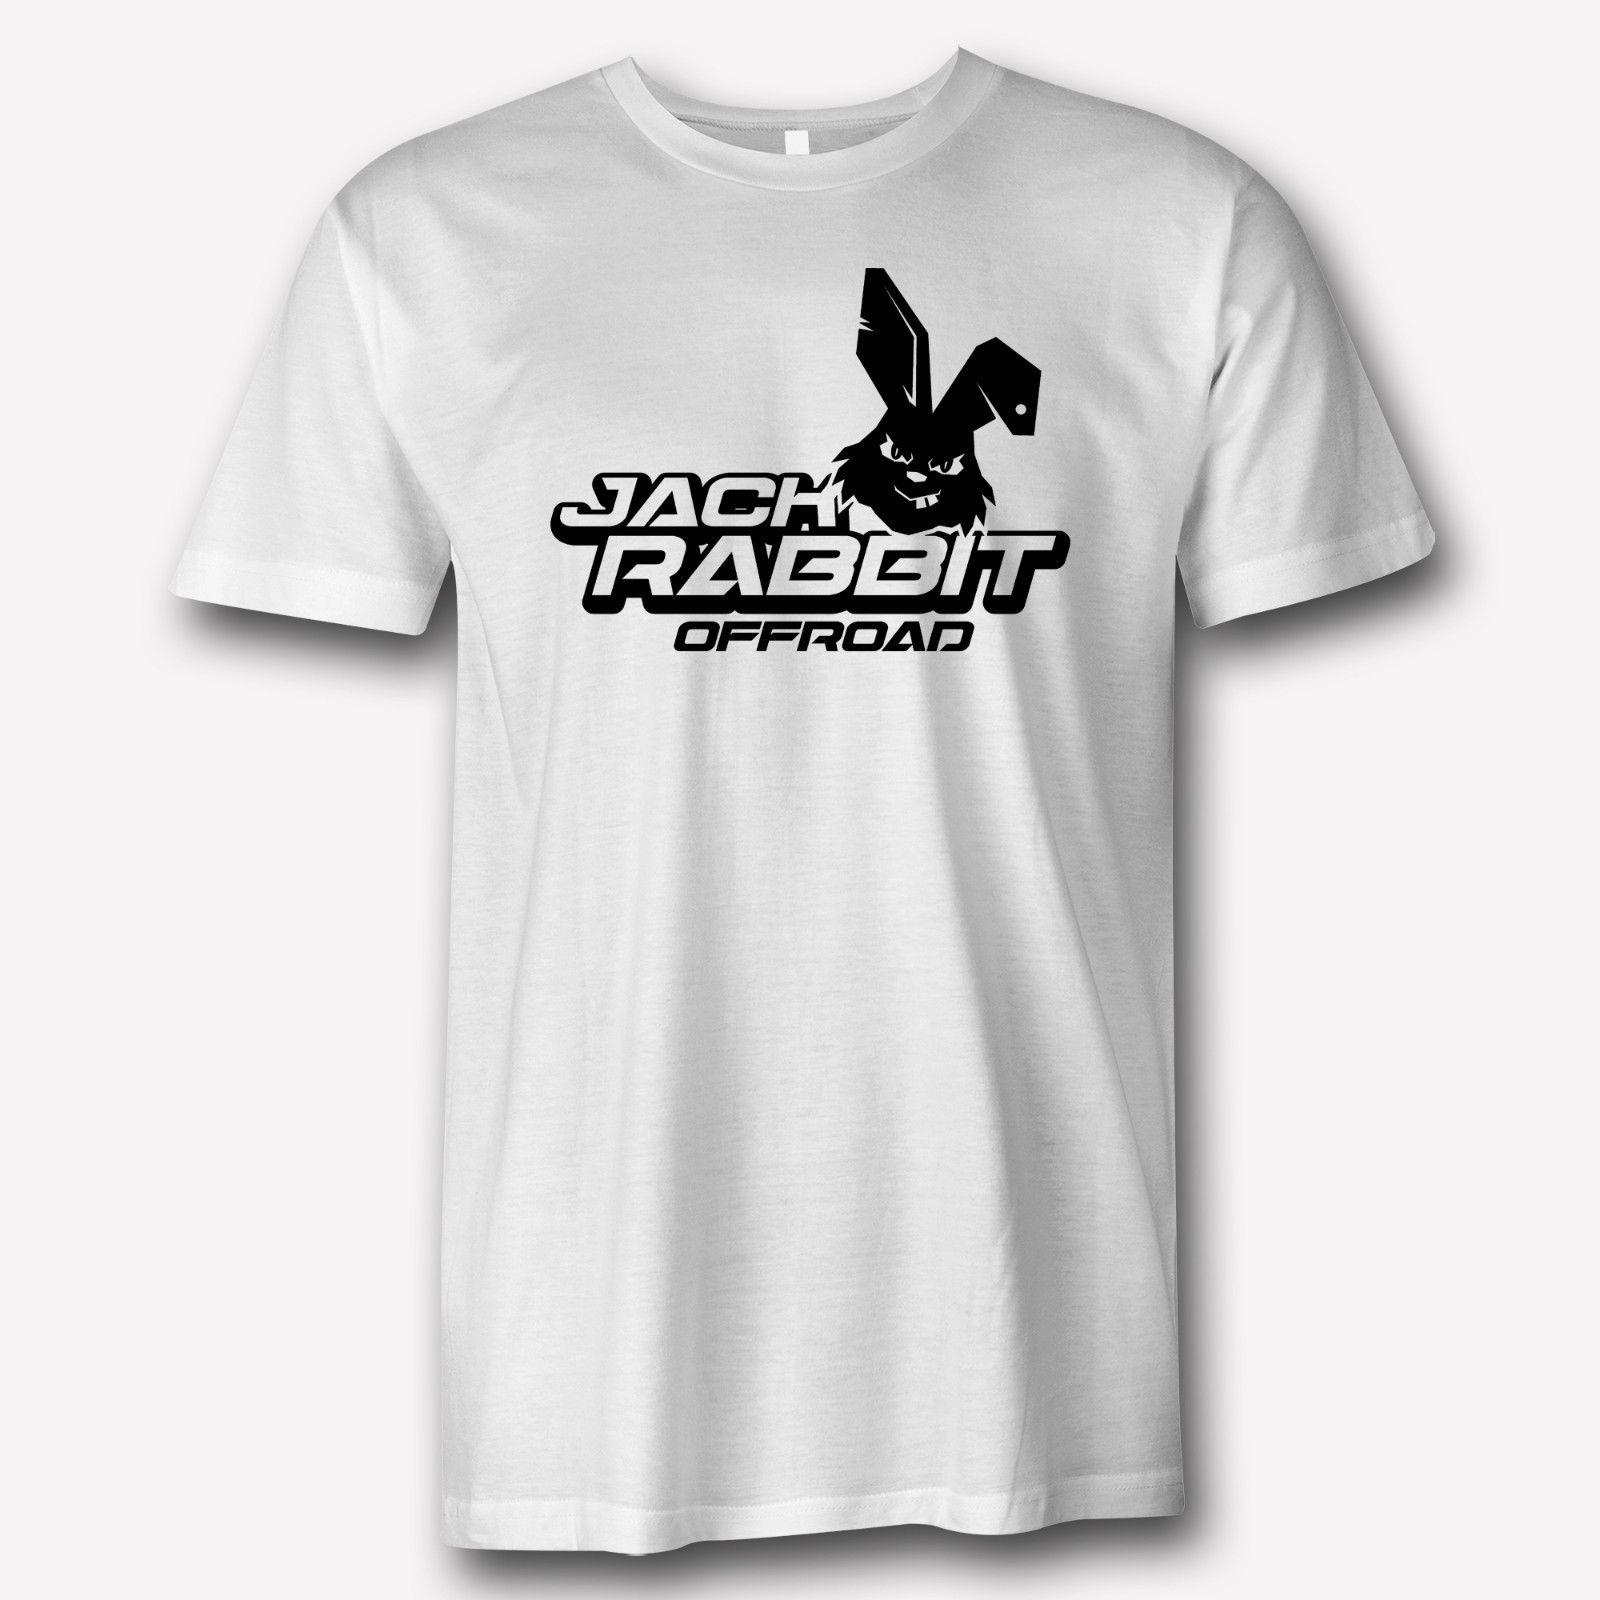 99f45df0094 Jack Rabbit Offroad Logo Racing Vintage 90 Apparel White T Shirt ART 100%  Cotton Short Sleeve O Neck T Shirt Top Tee Basic 100% Cotton Cool Top T  Shirt ...